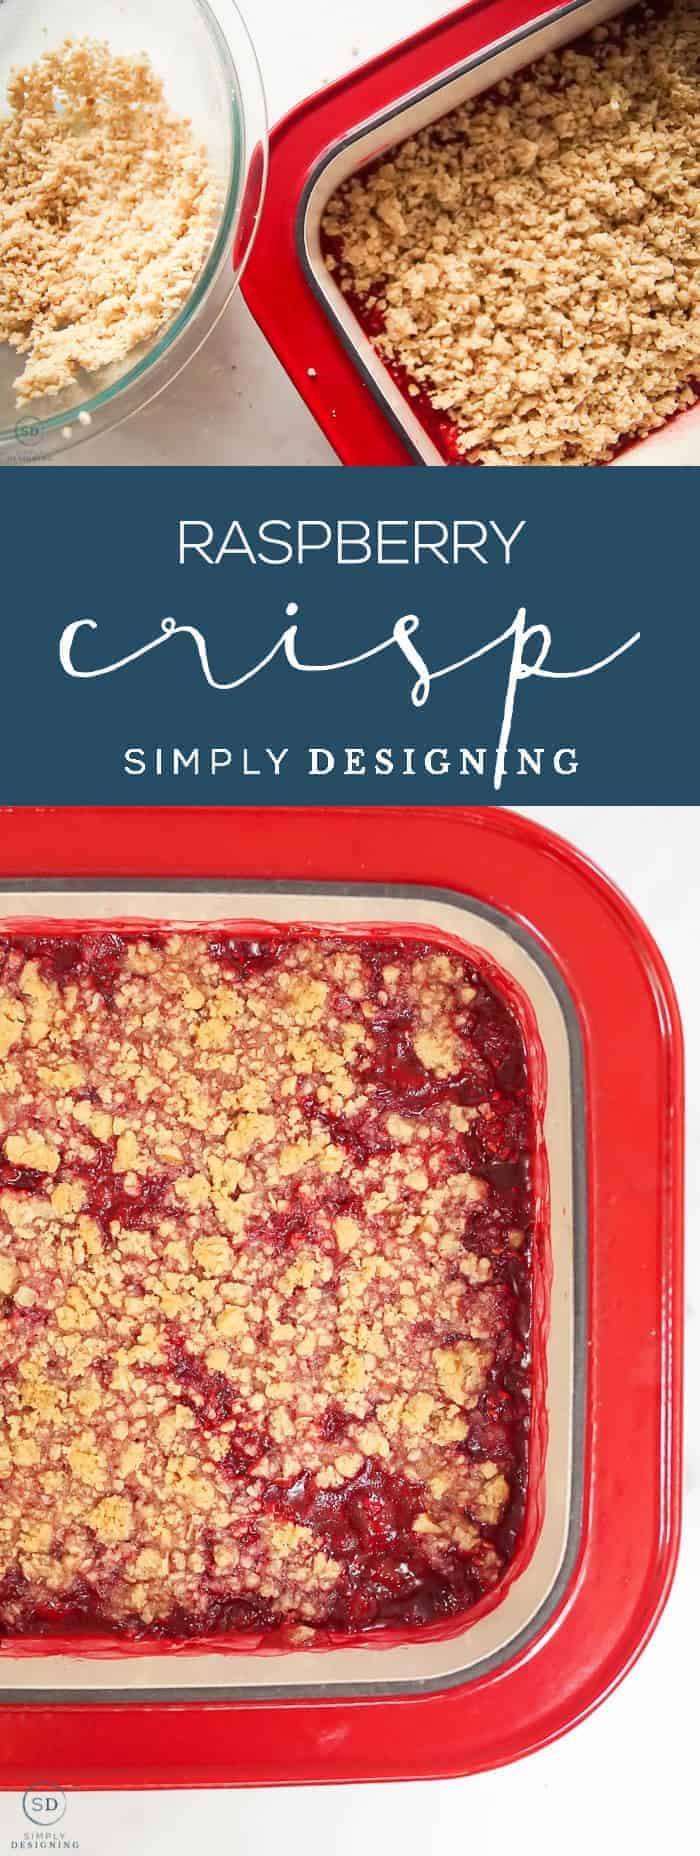 This delicious Raspberry Crisp recipe is the perfect way to enjoy fresh or frozen raspberries in yummy dessert form any time of the year